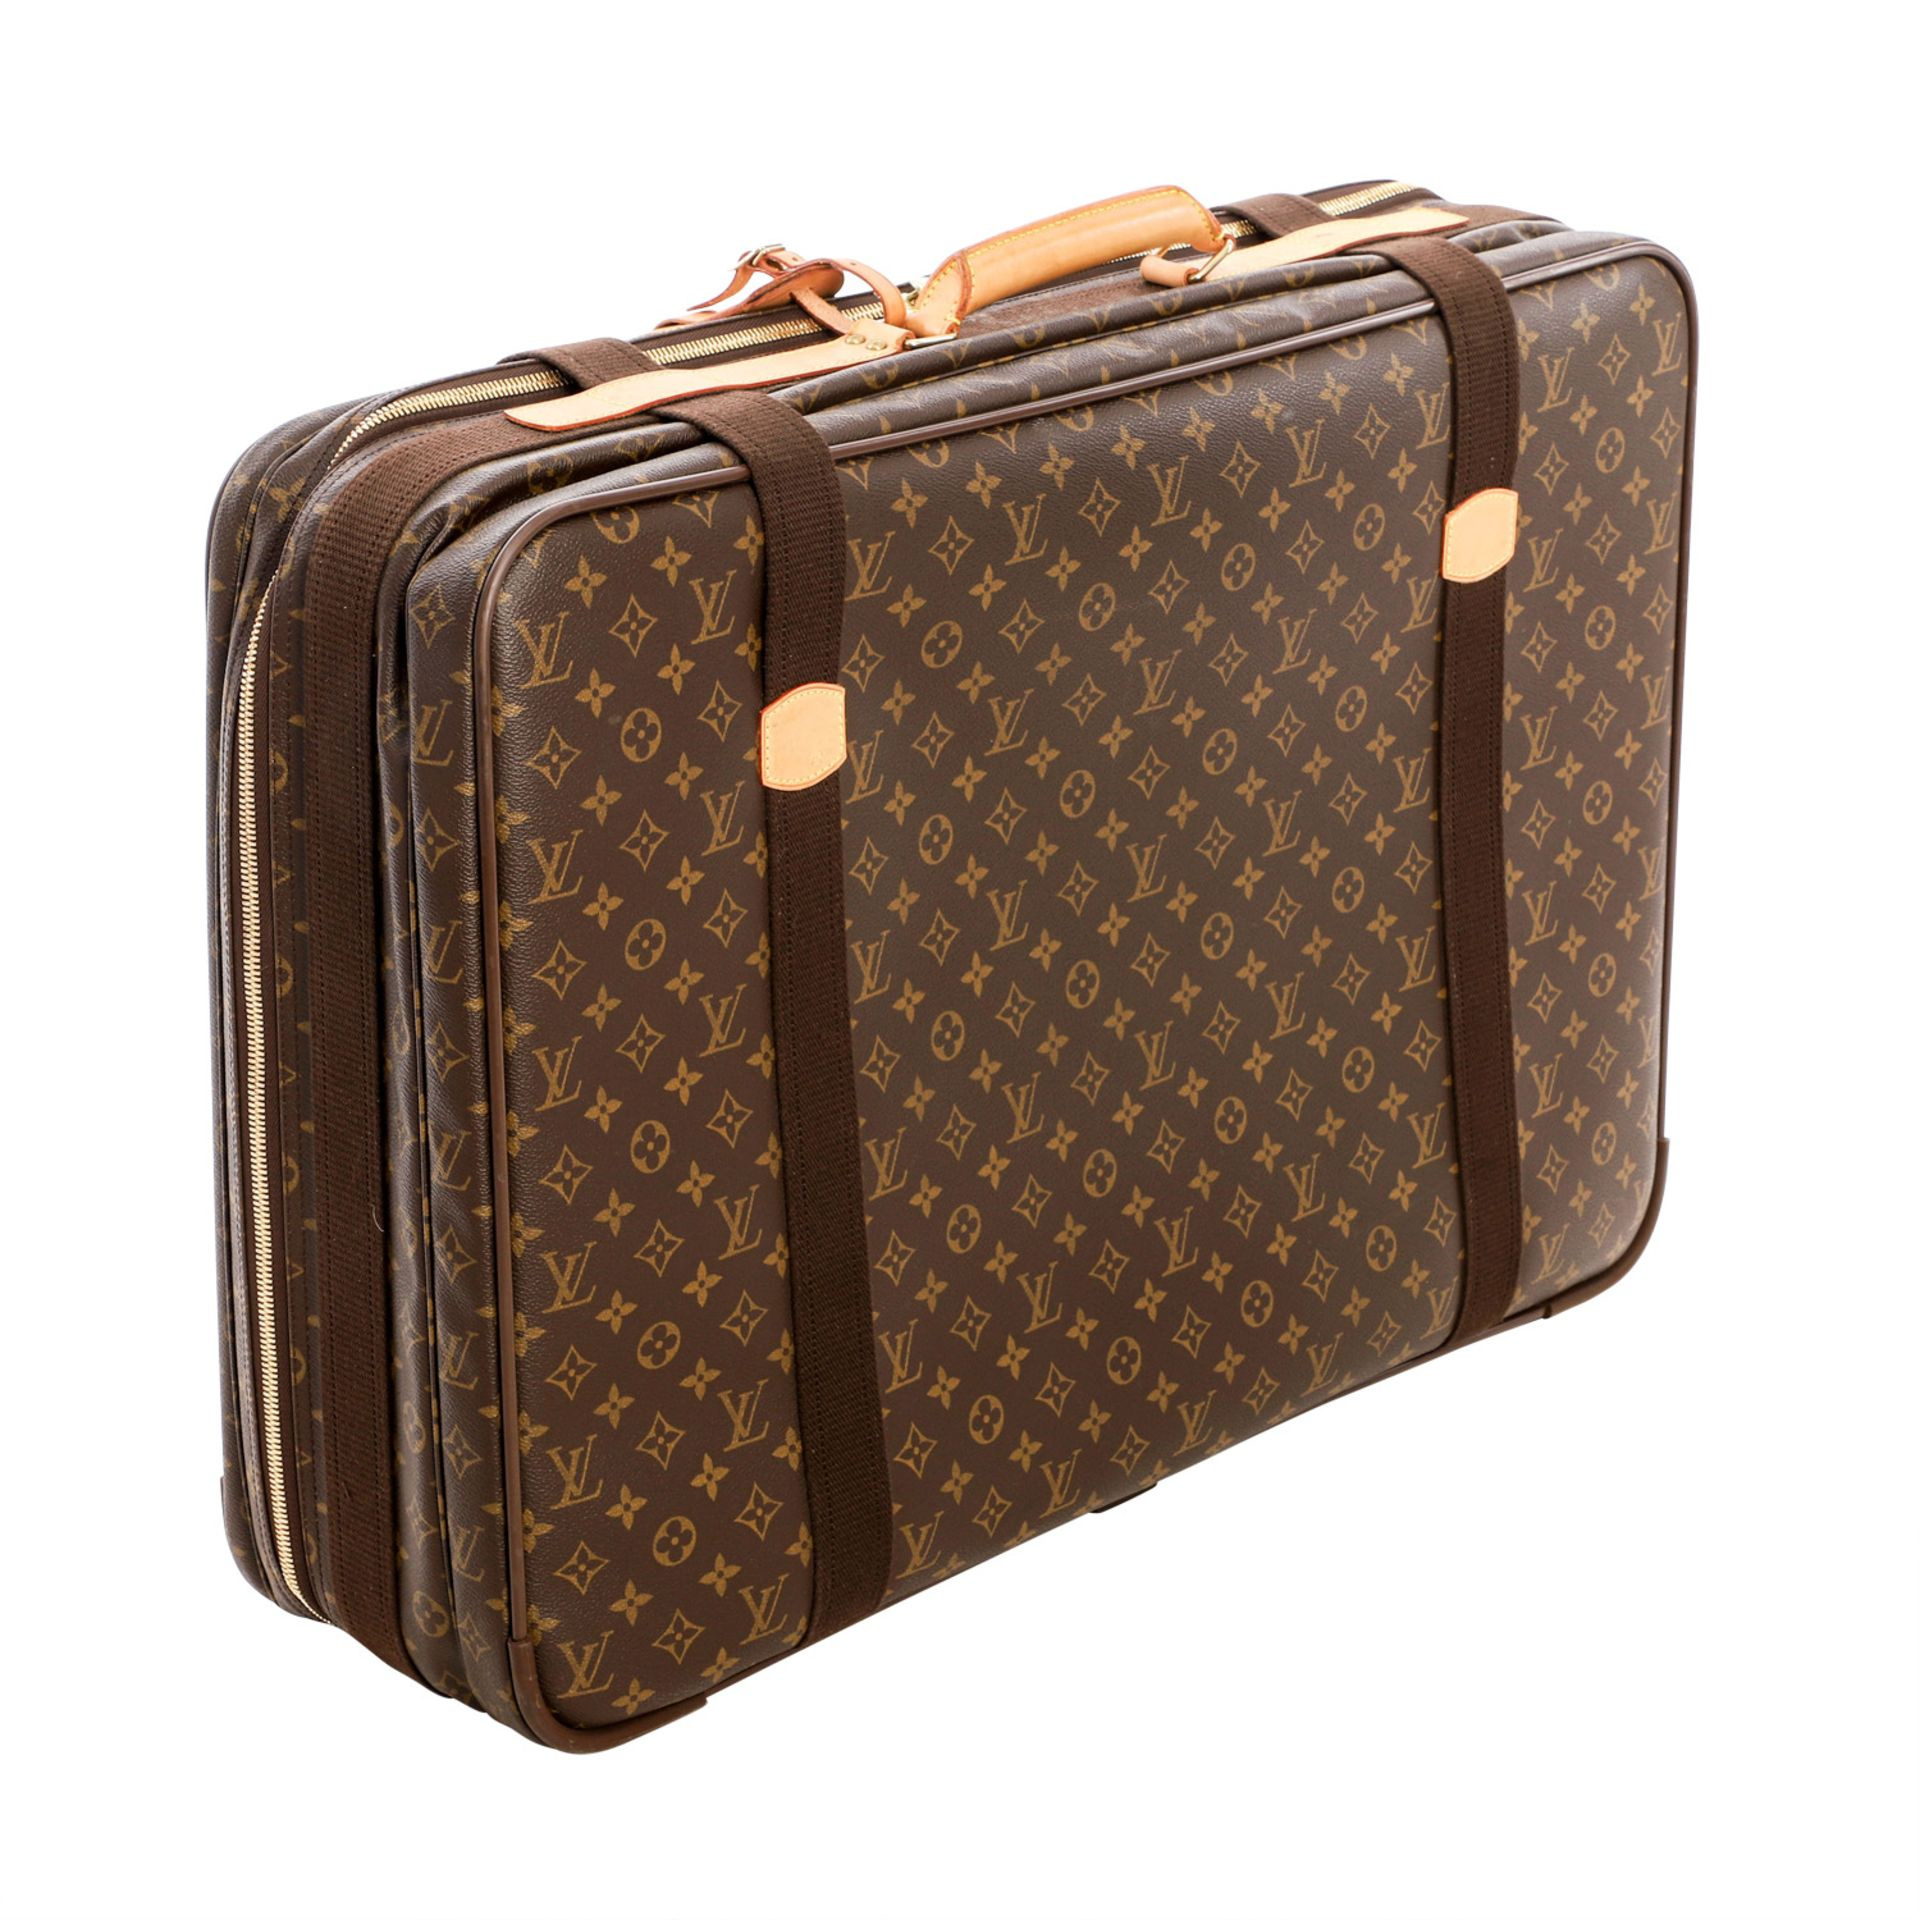 "LOUIS VUITTON Reisetasche ""SIRIUS 70"", Koll. 2000.Akt. NP.: 1.790,-€. Monogram Canva - Image 2 of 6"